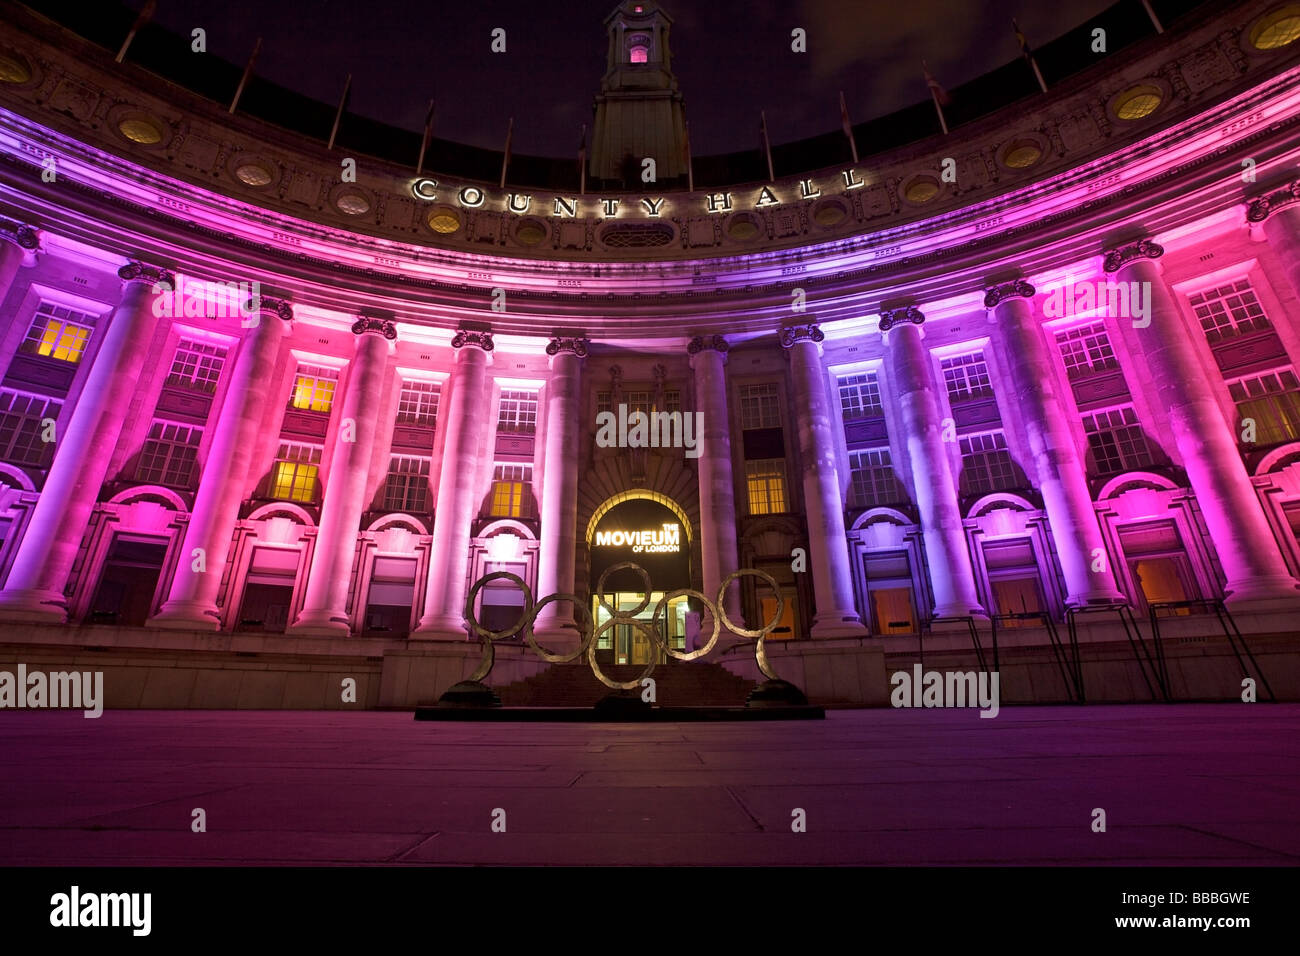 London County Hall, LCH showing different color of lights, City of London, United Kingdom - Stock Image